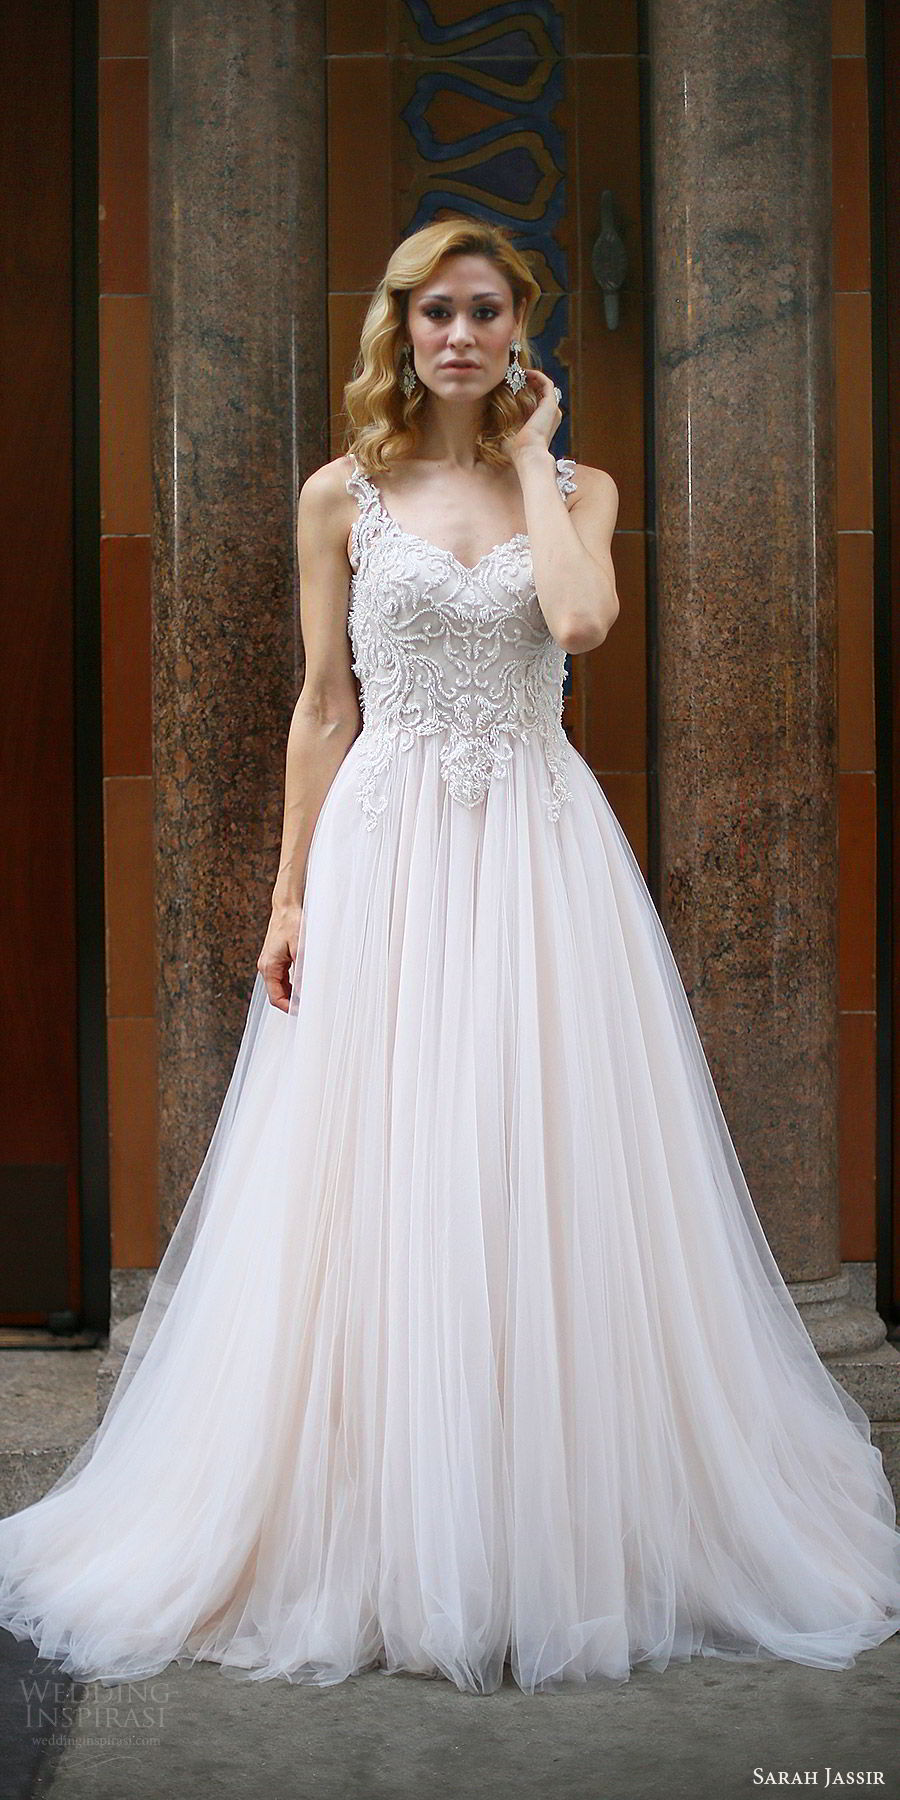 sarah jassir bridal 2018 sleeveless illusion straps sweetheart heavily embellished bodice wedding dress (suri) mv blush sweep train romantic elegant